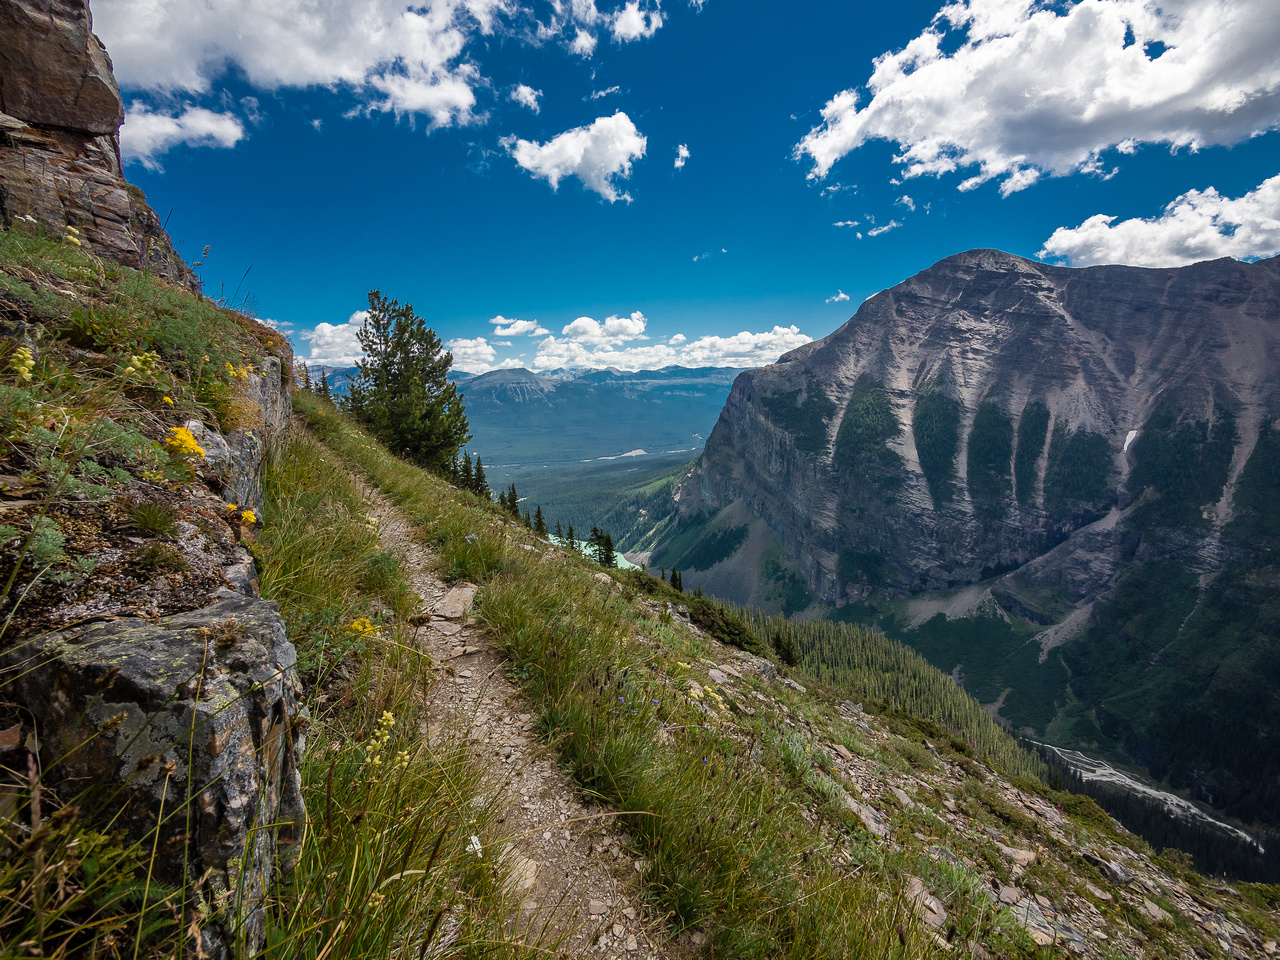 The scenic high traverse is dotted with many flowers.